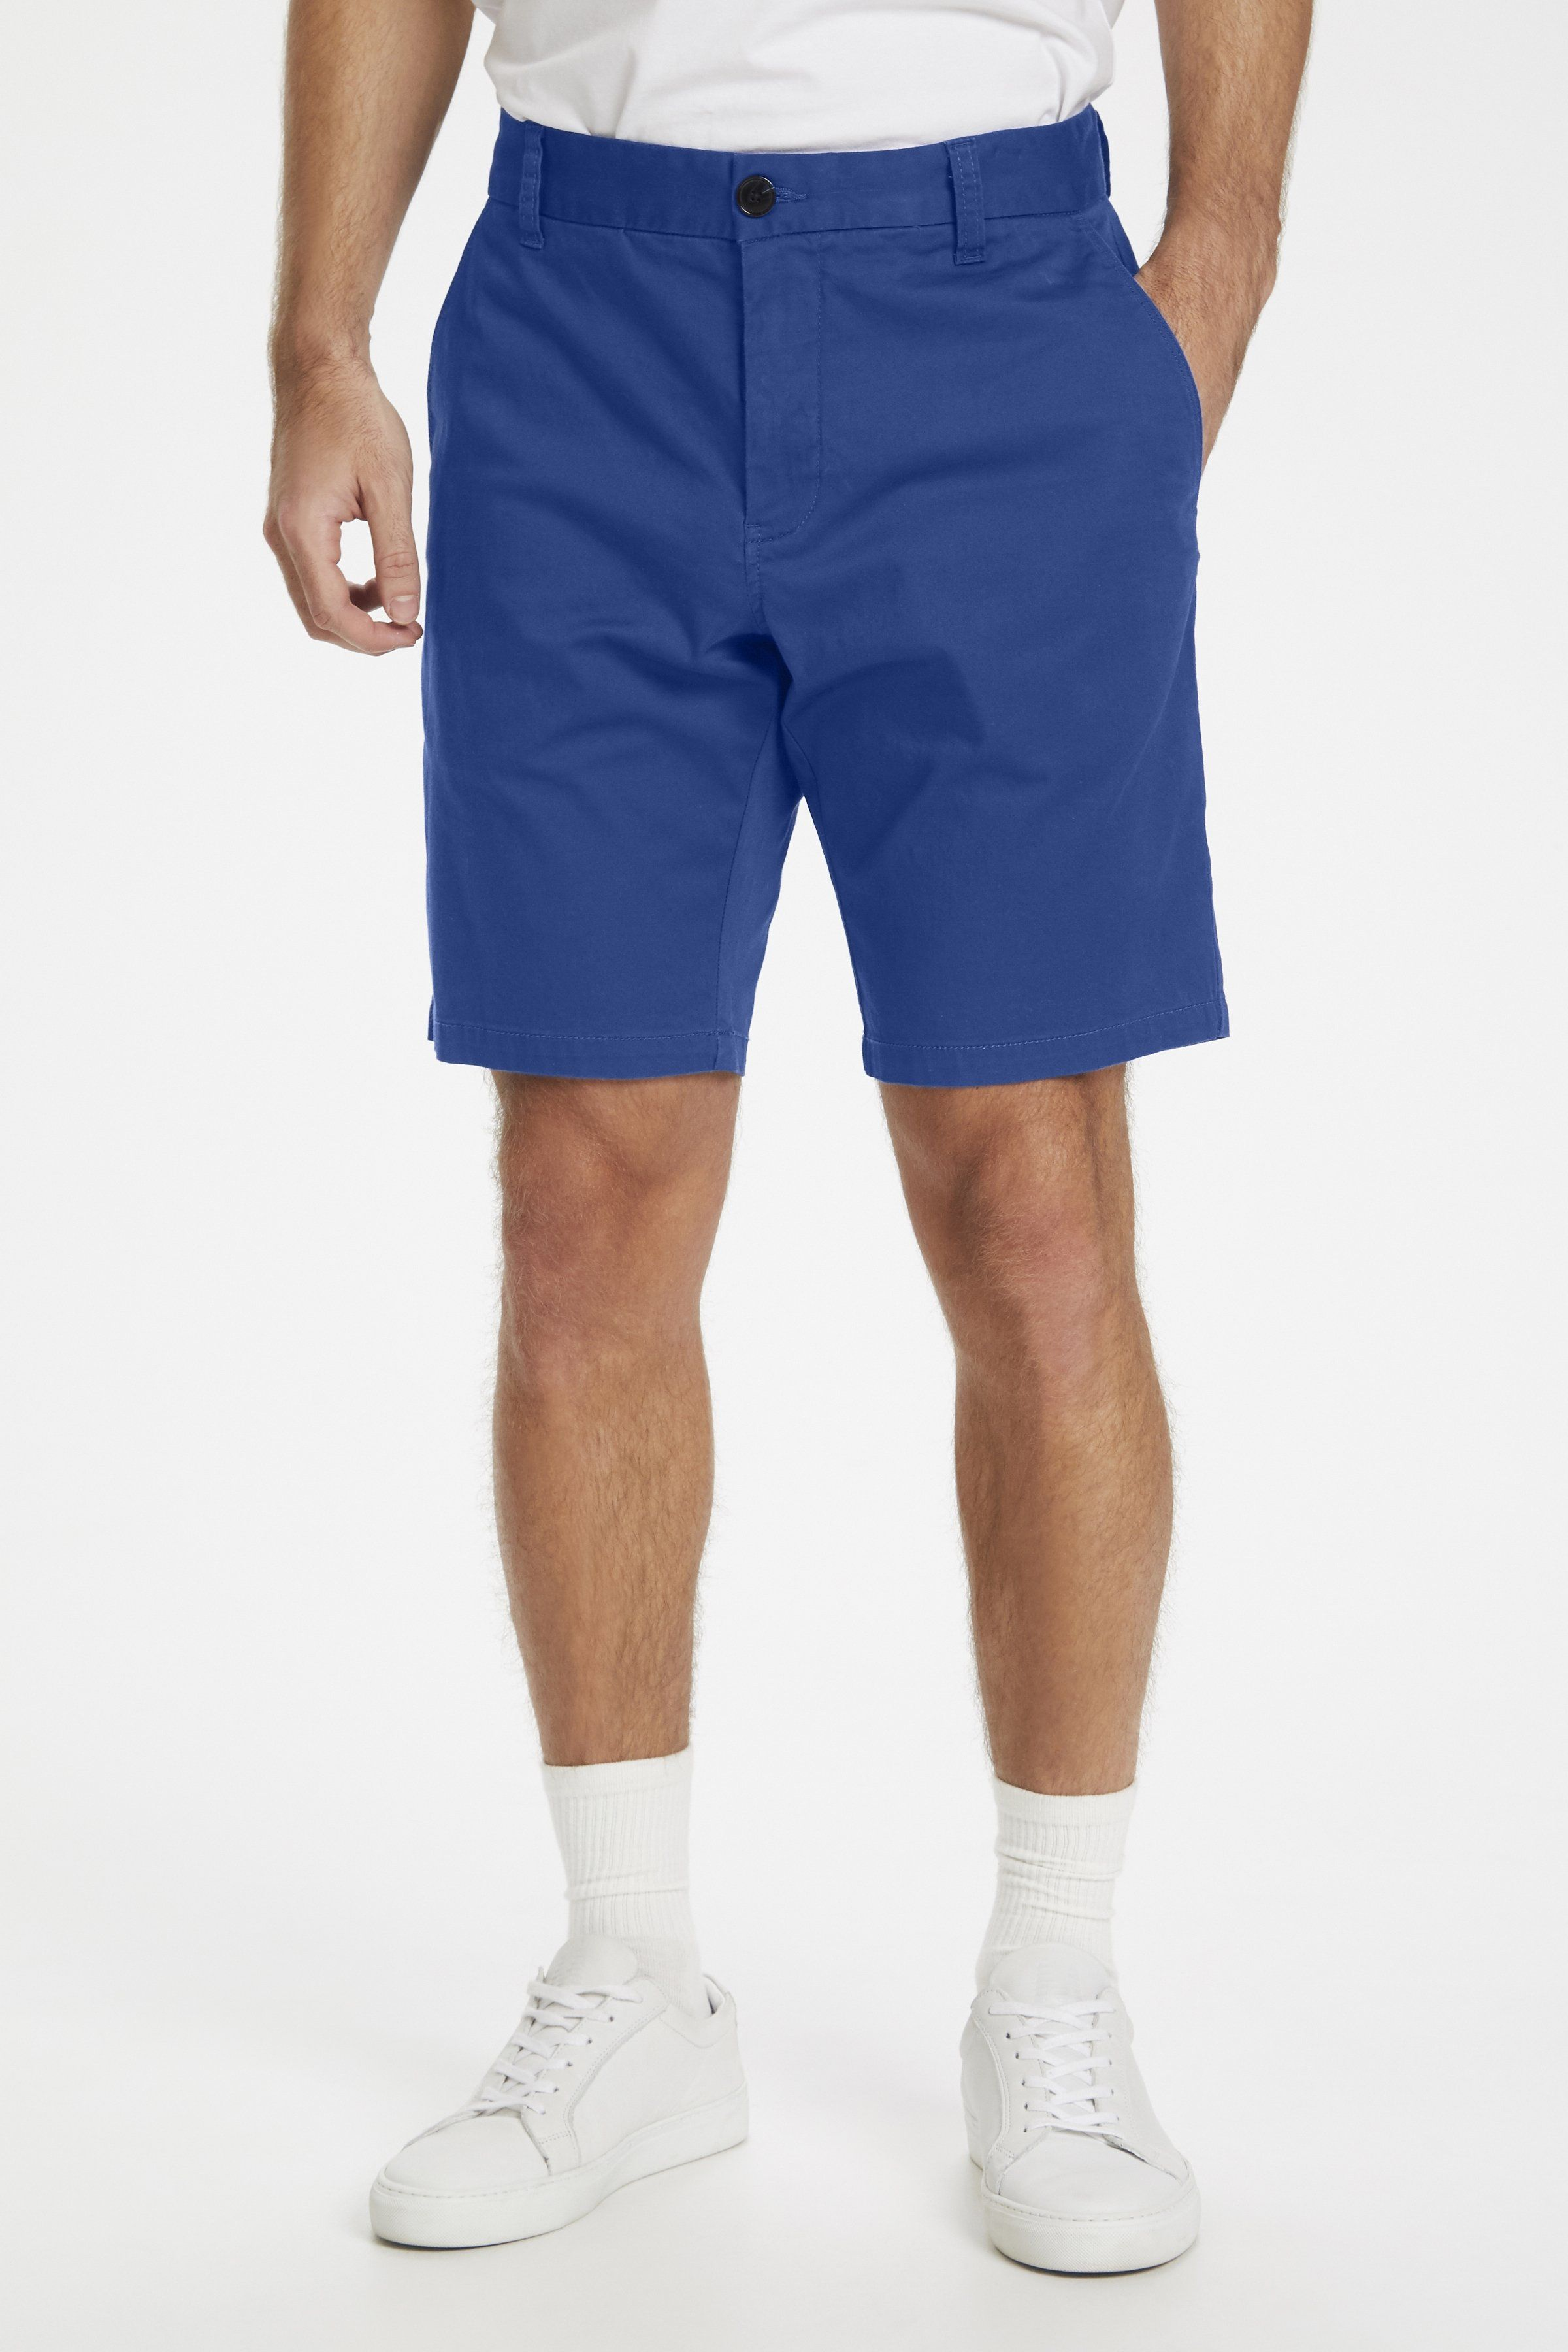 Pristu Mediterranean Blue Tailored Shorts 32'